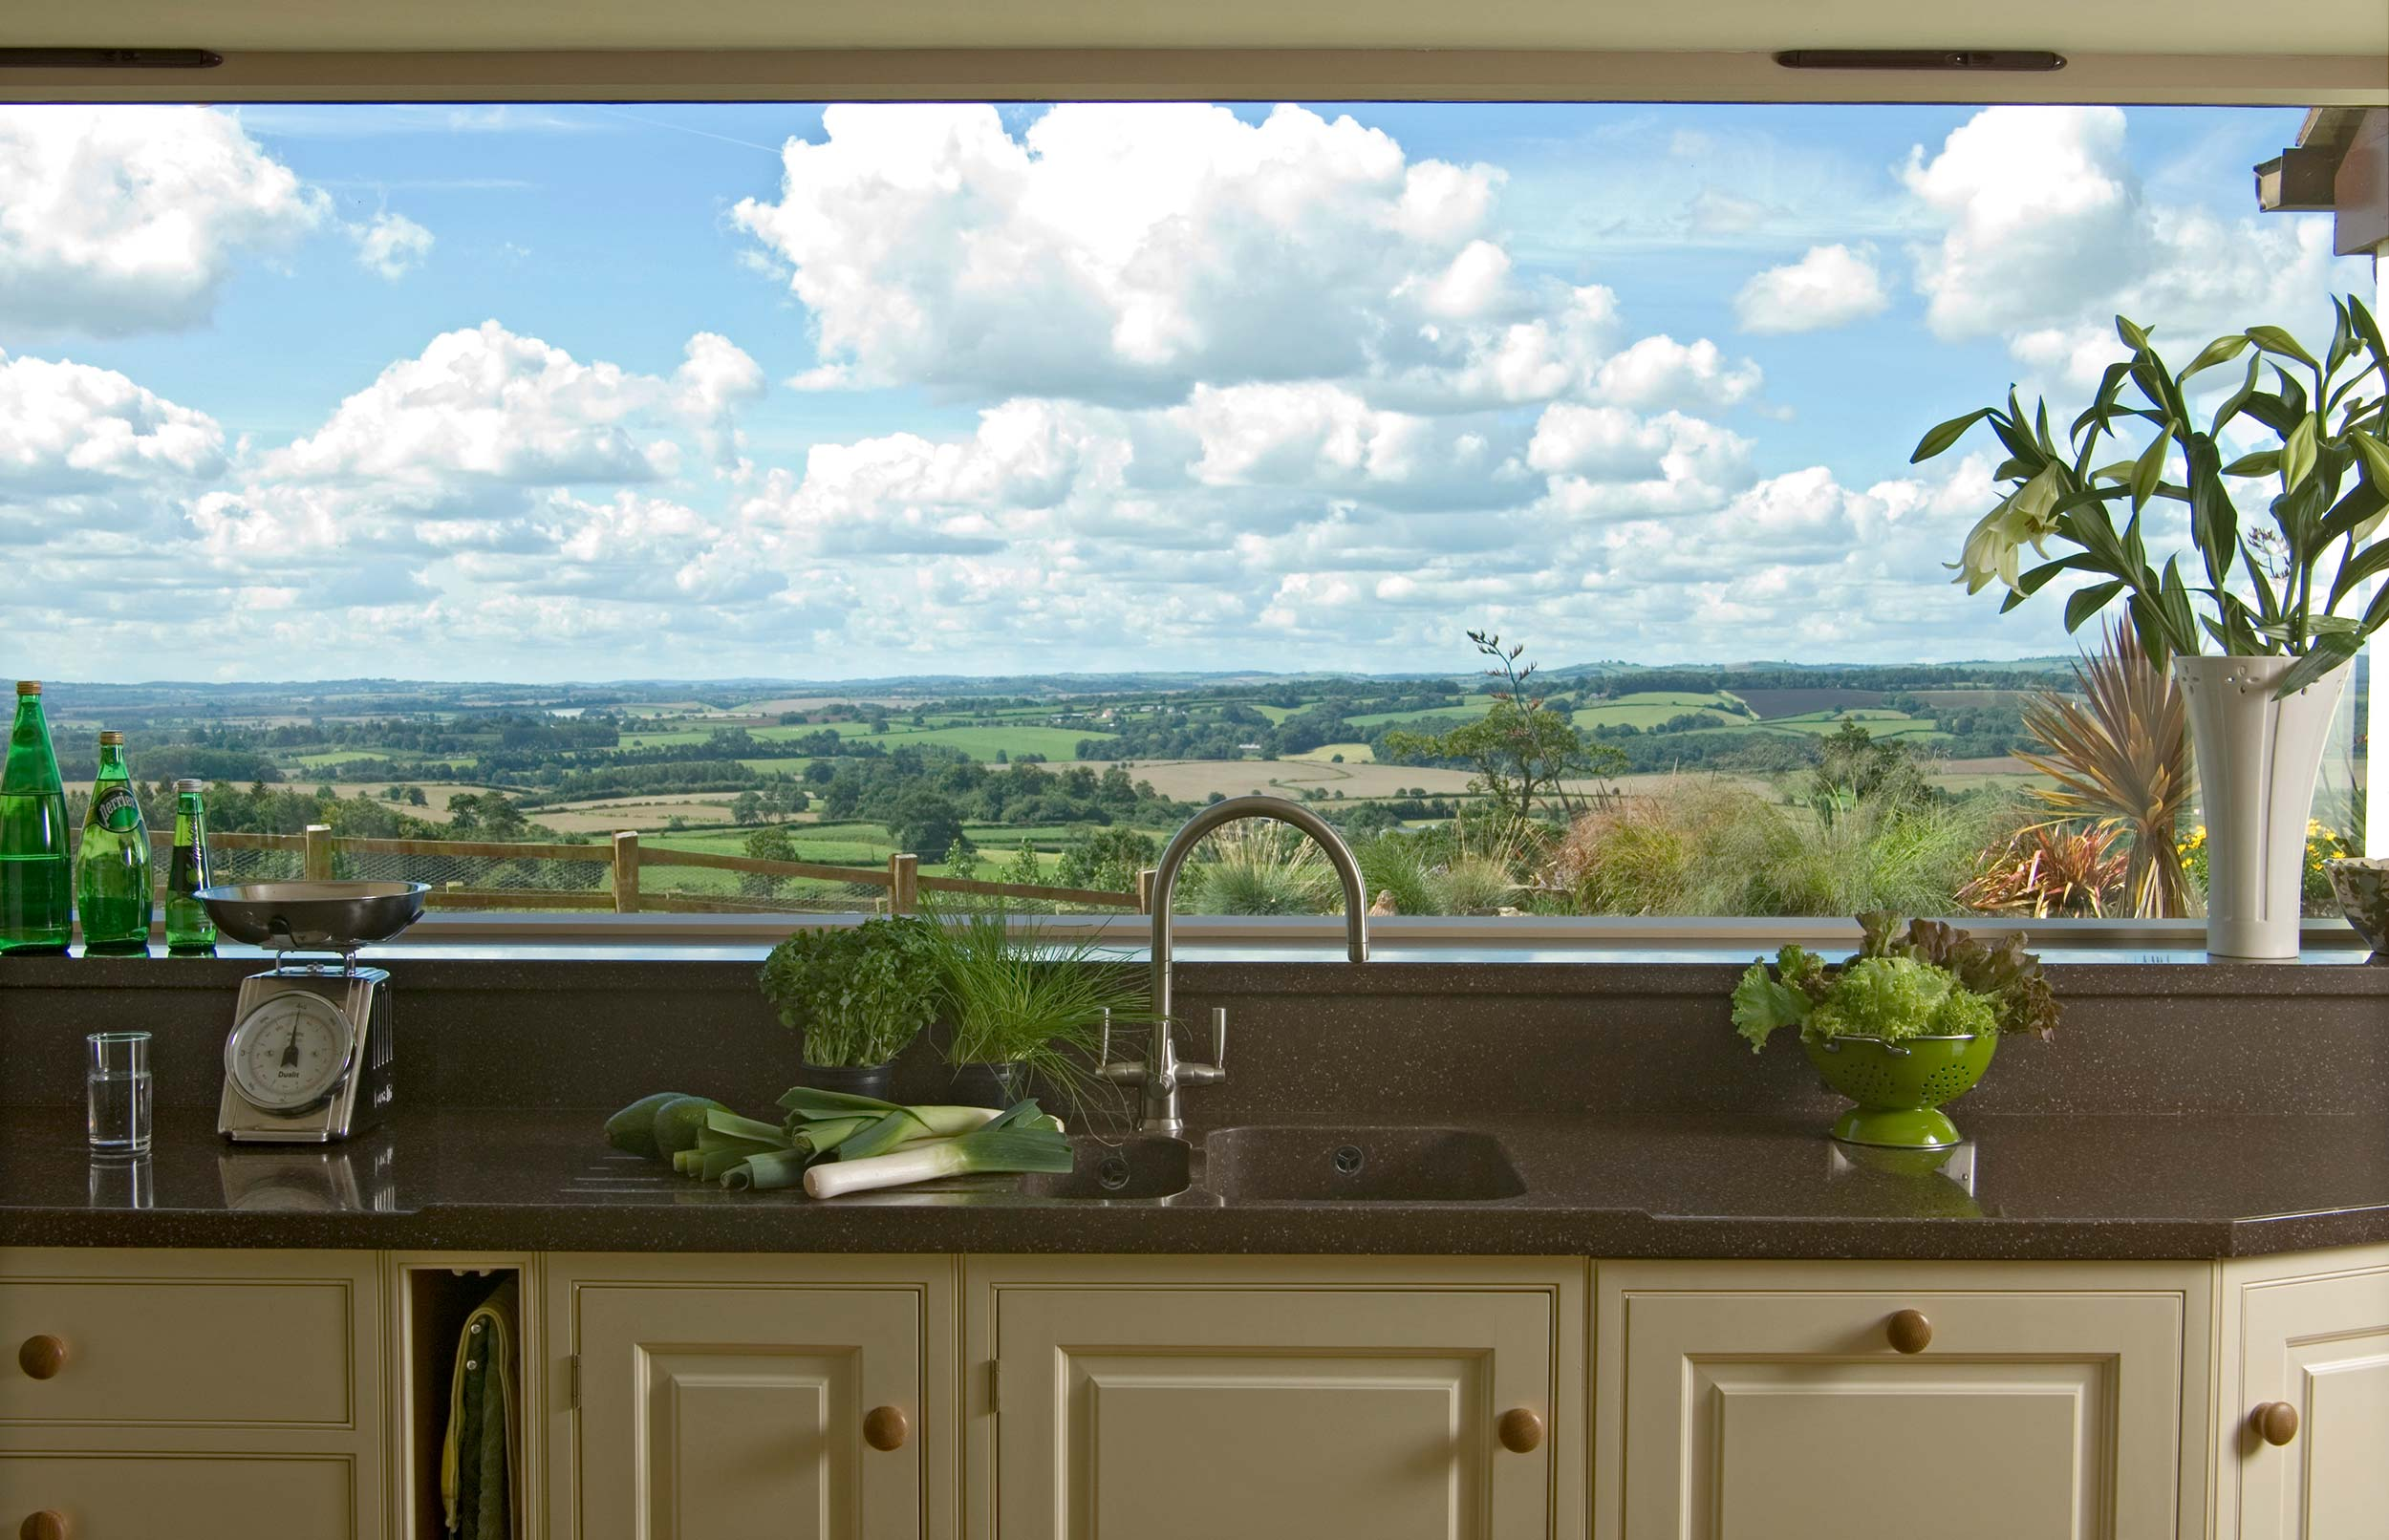 Panoramic view of Countryside from Bespoke Country Kitchen